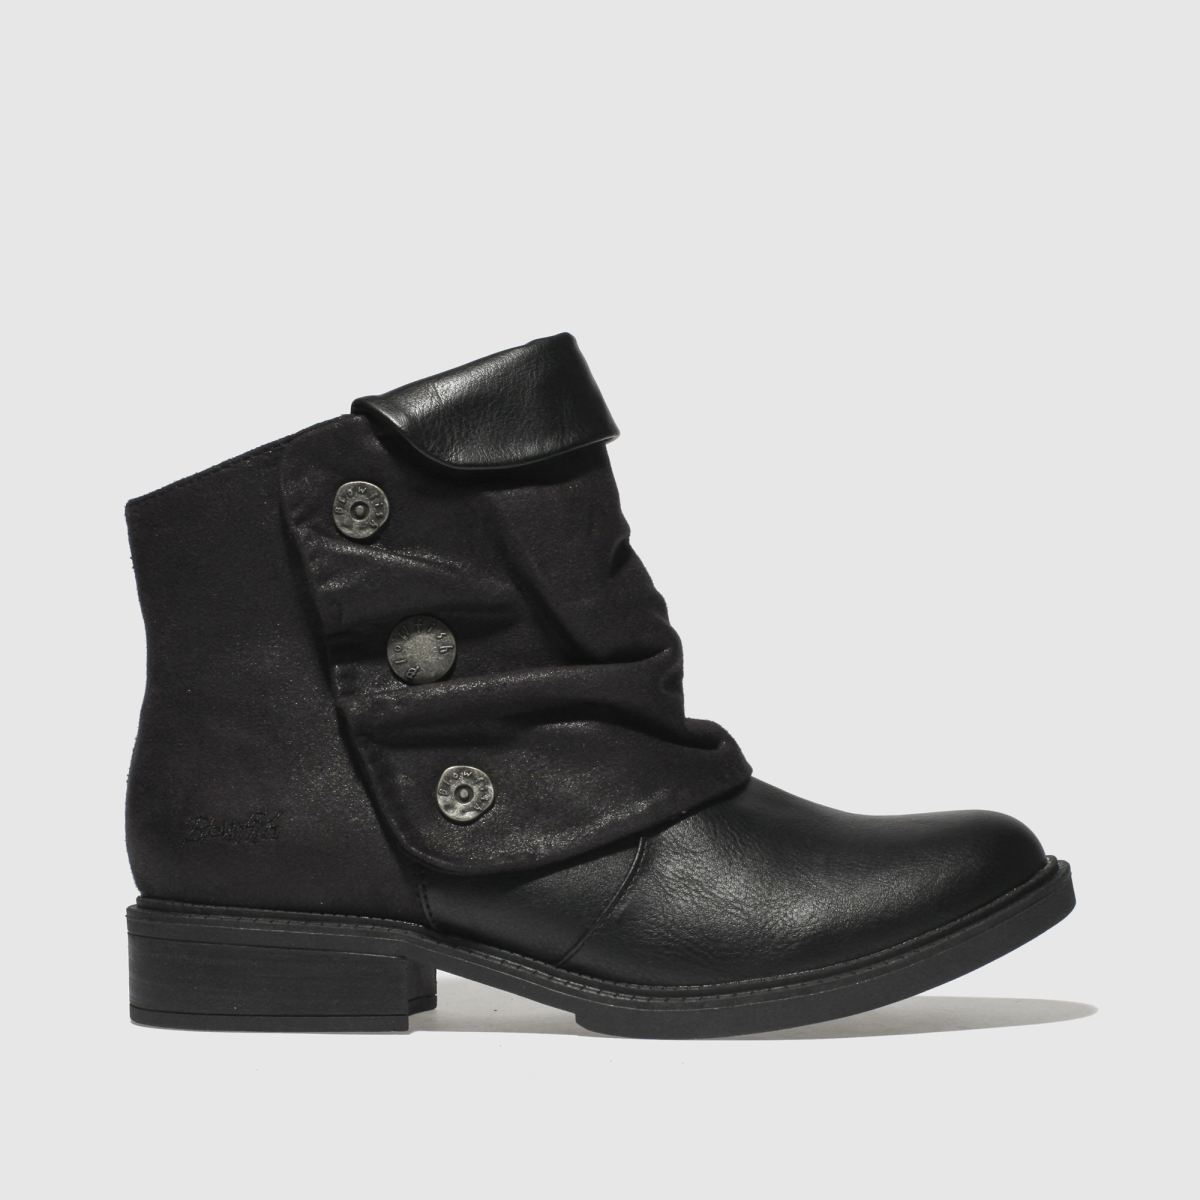 Blowfish Black Vynn Boots